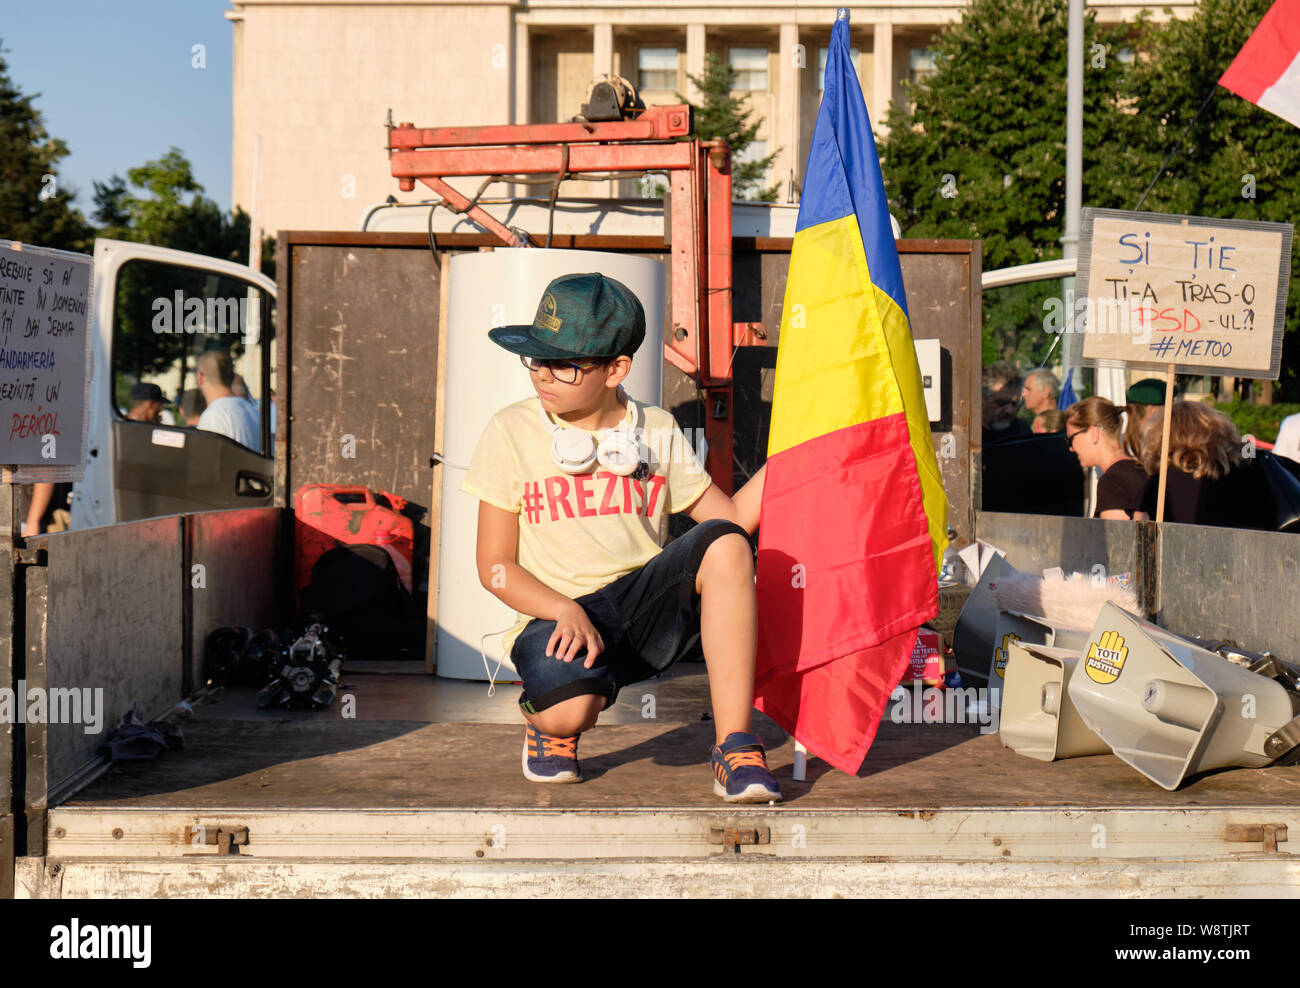 Young boy with REZIST t-shirt and romanian flag at protest against allegations of on-going corruption within the government of Romania, in Bucharest Stock Photo